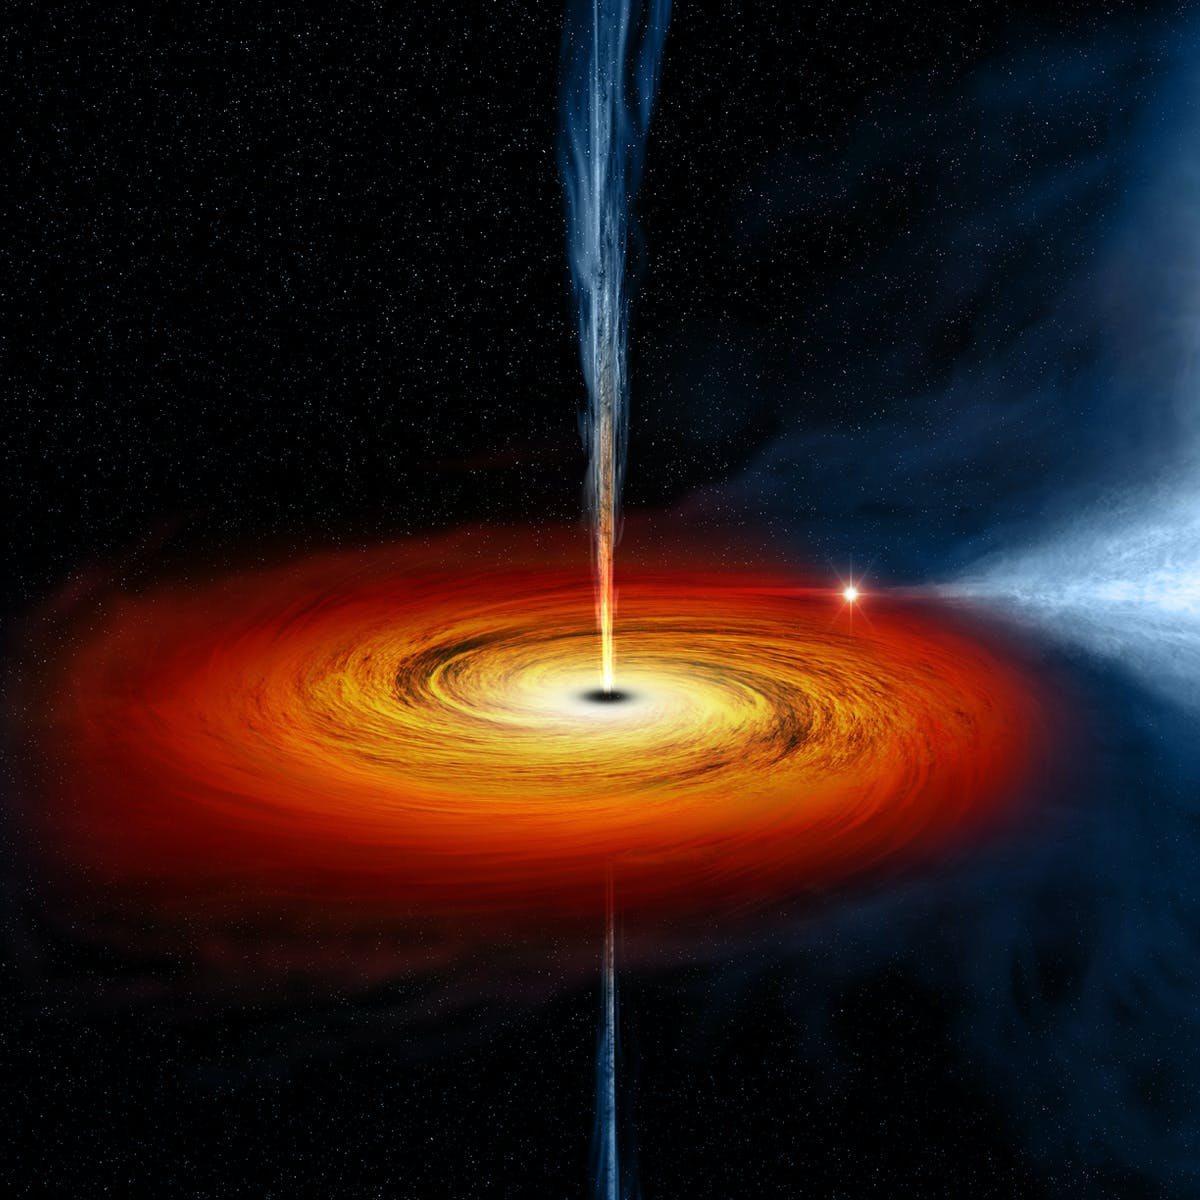 Scientists discover weird objects orbiting Milky Way's central black hole